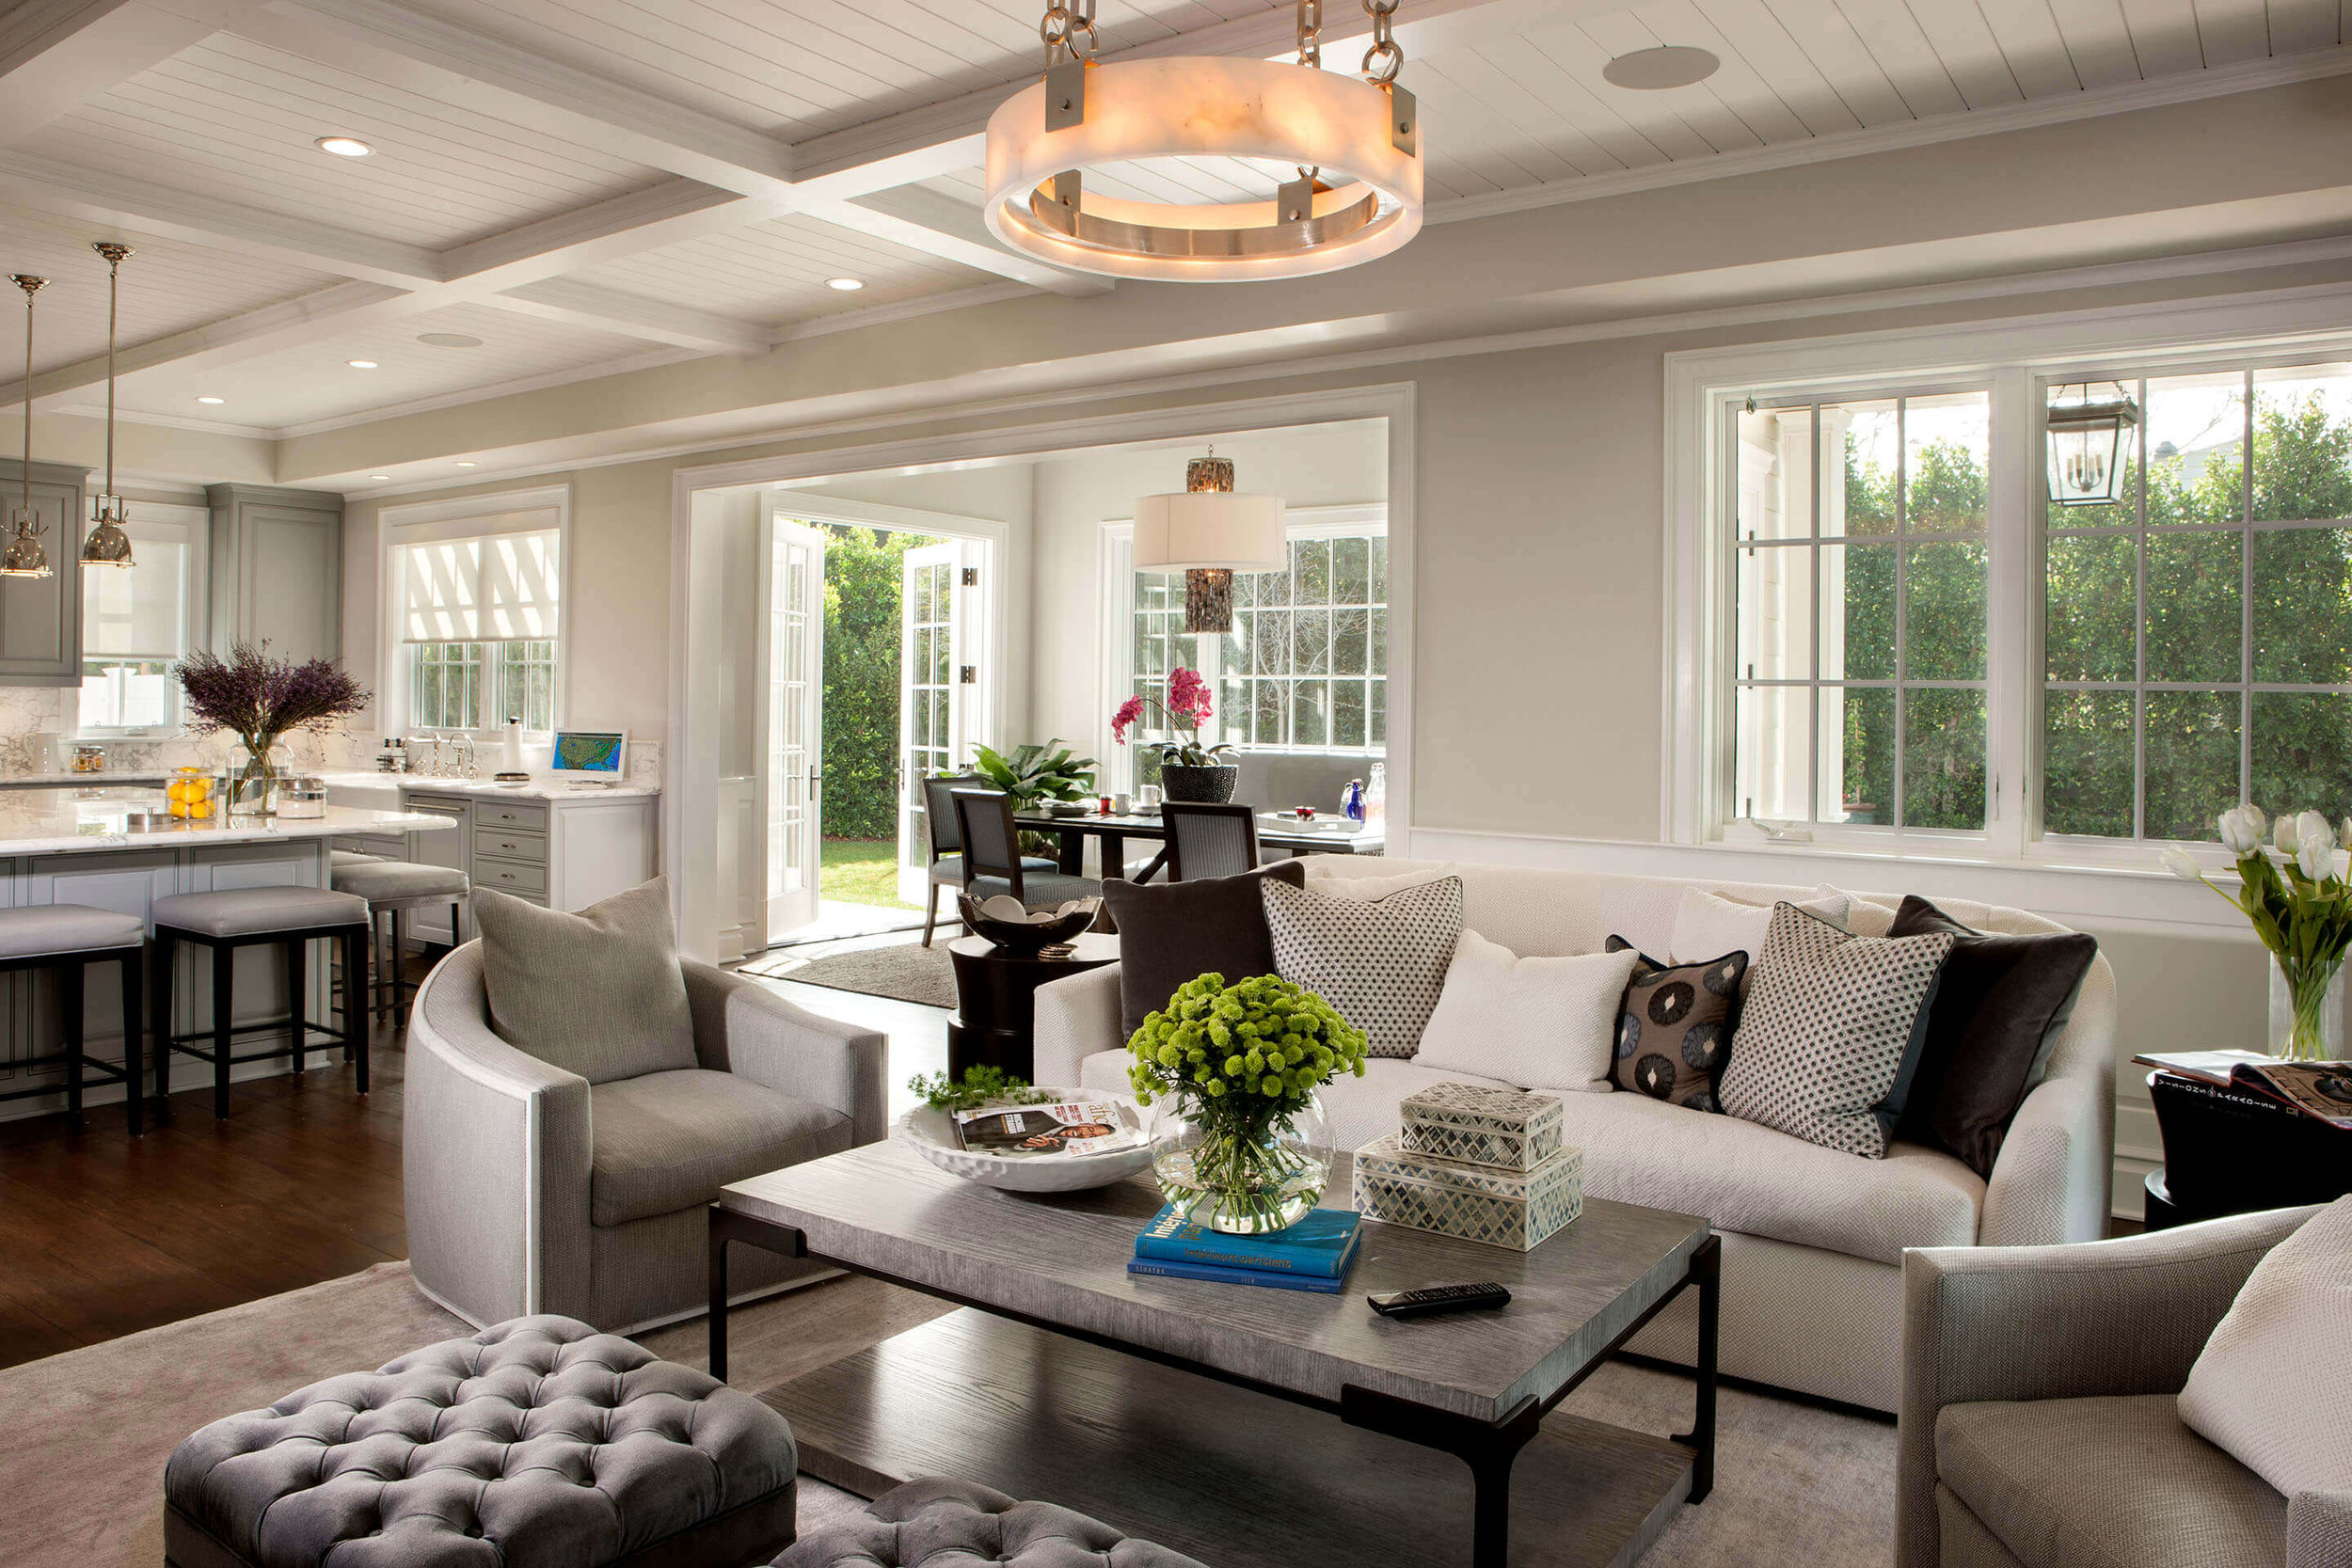 elizabeth-tapper-interiors-brentwood-family-room-kitchen-breakfast-nook.jpg